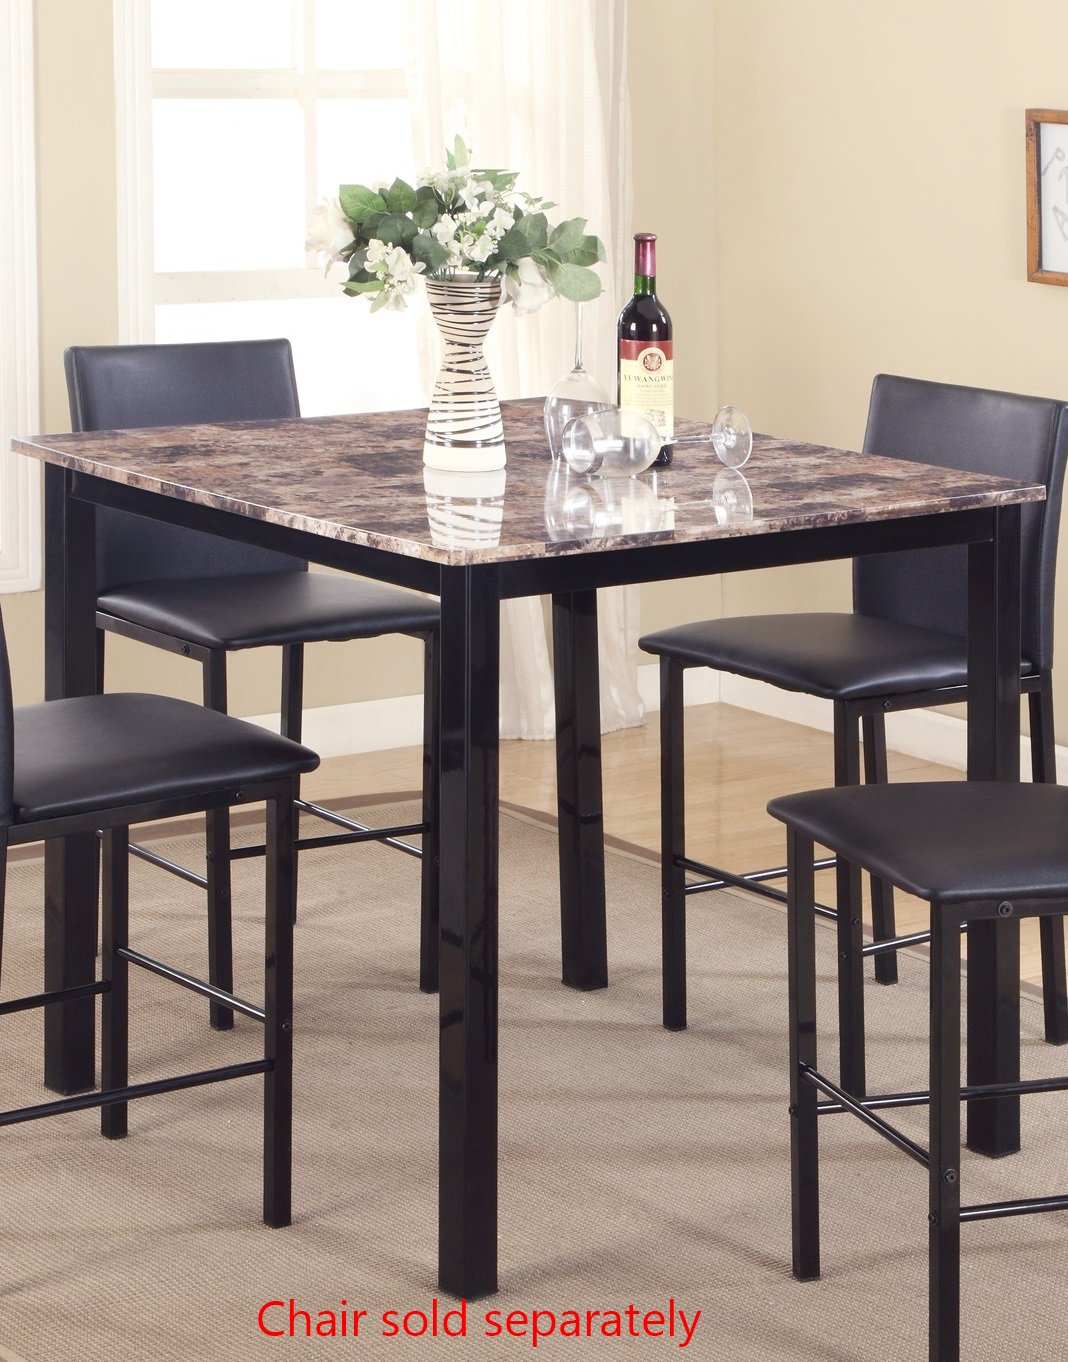 Roundhill Furniture PT007 Citico Metal Counter Height Dining Table with Laminated Faux Marble Top